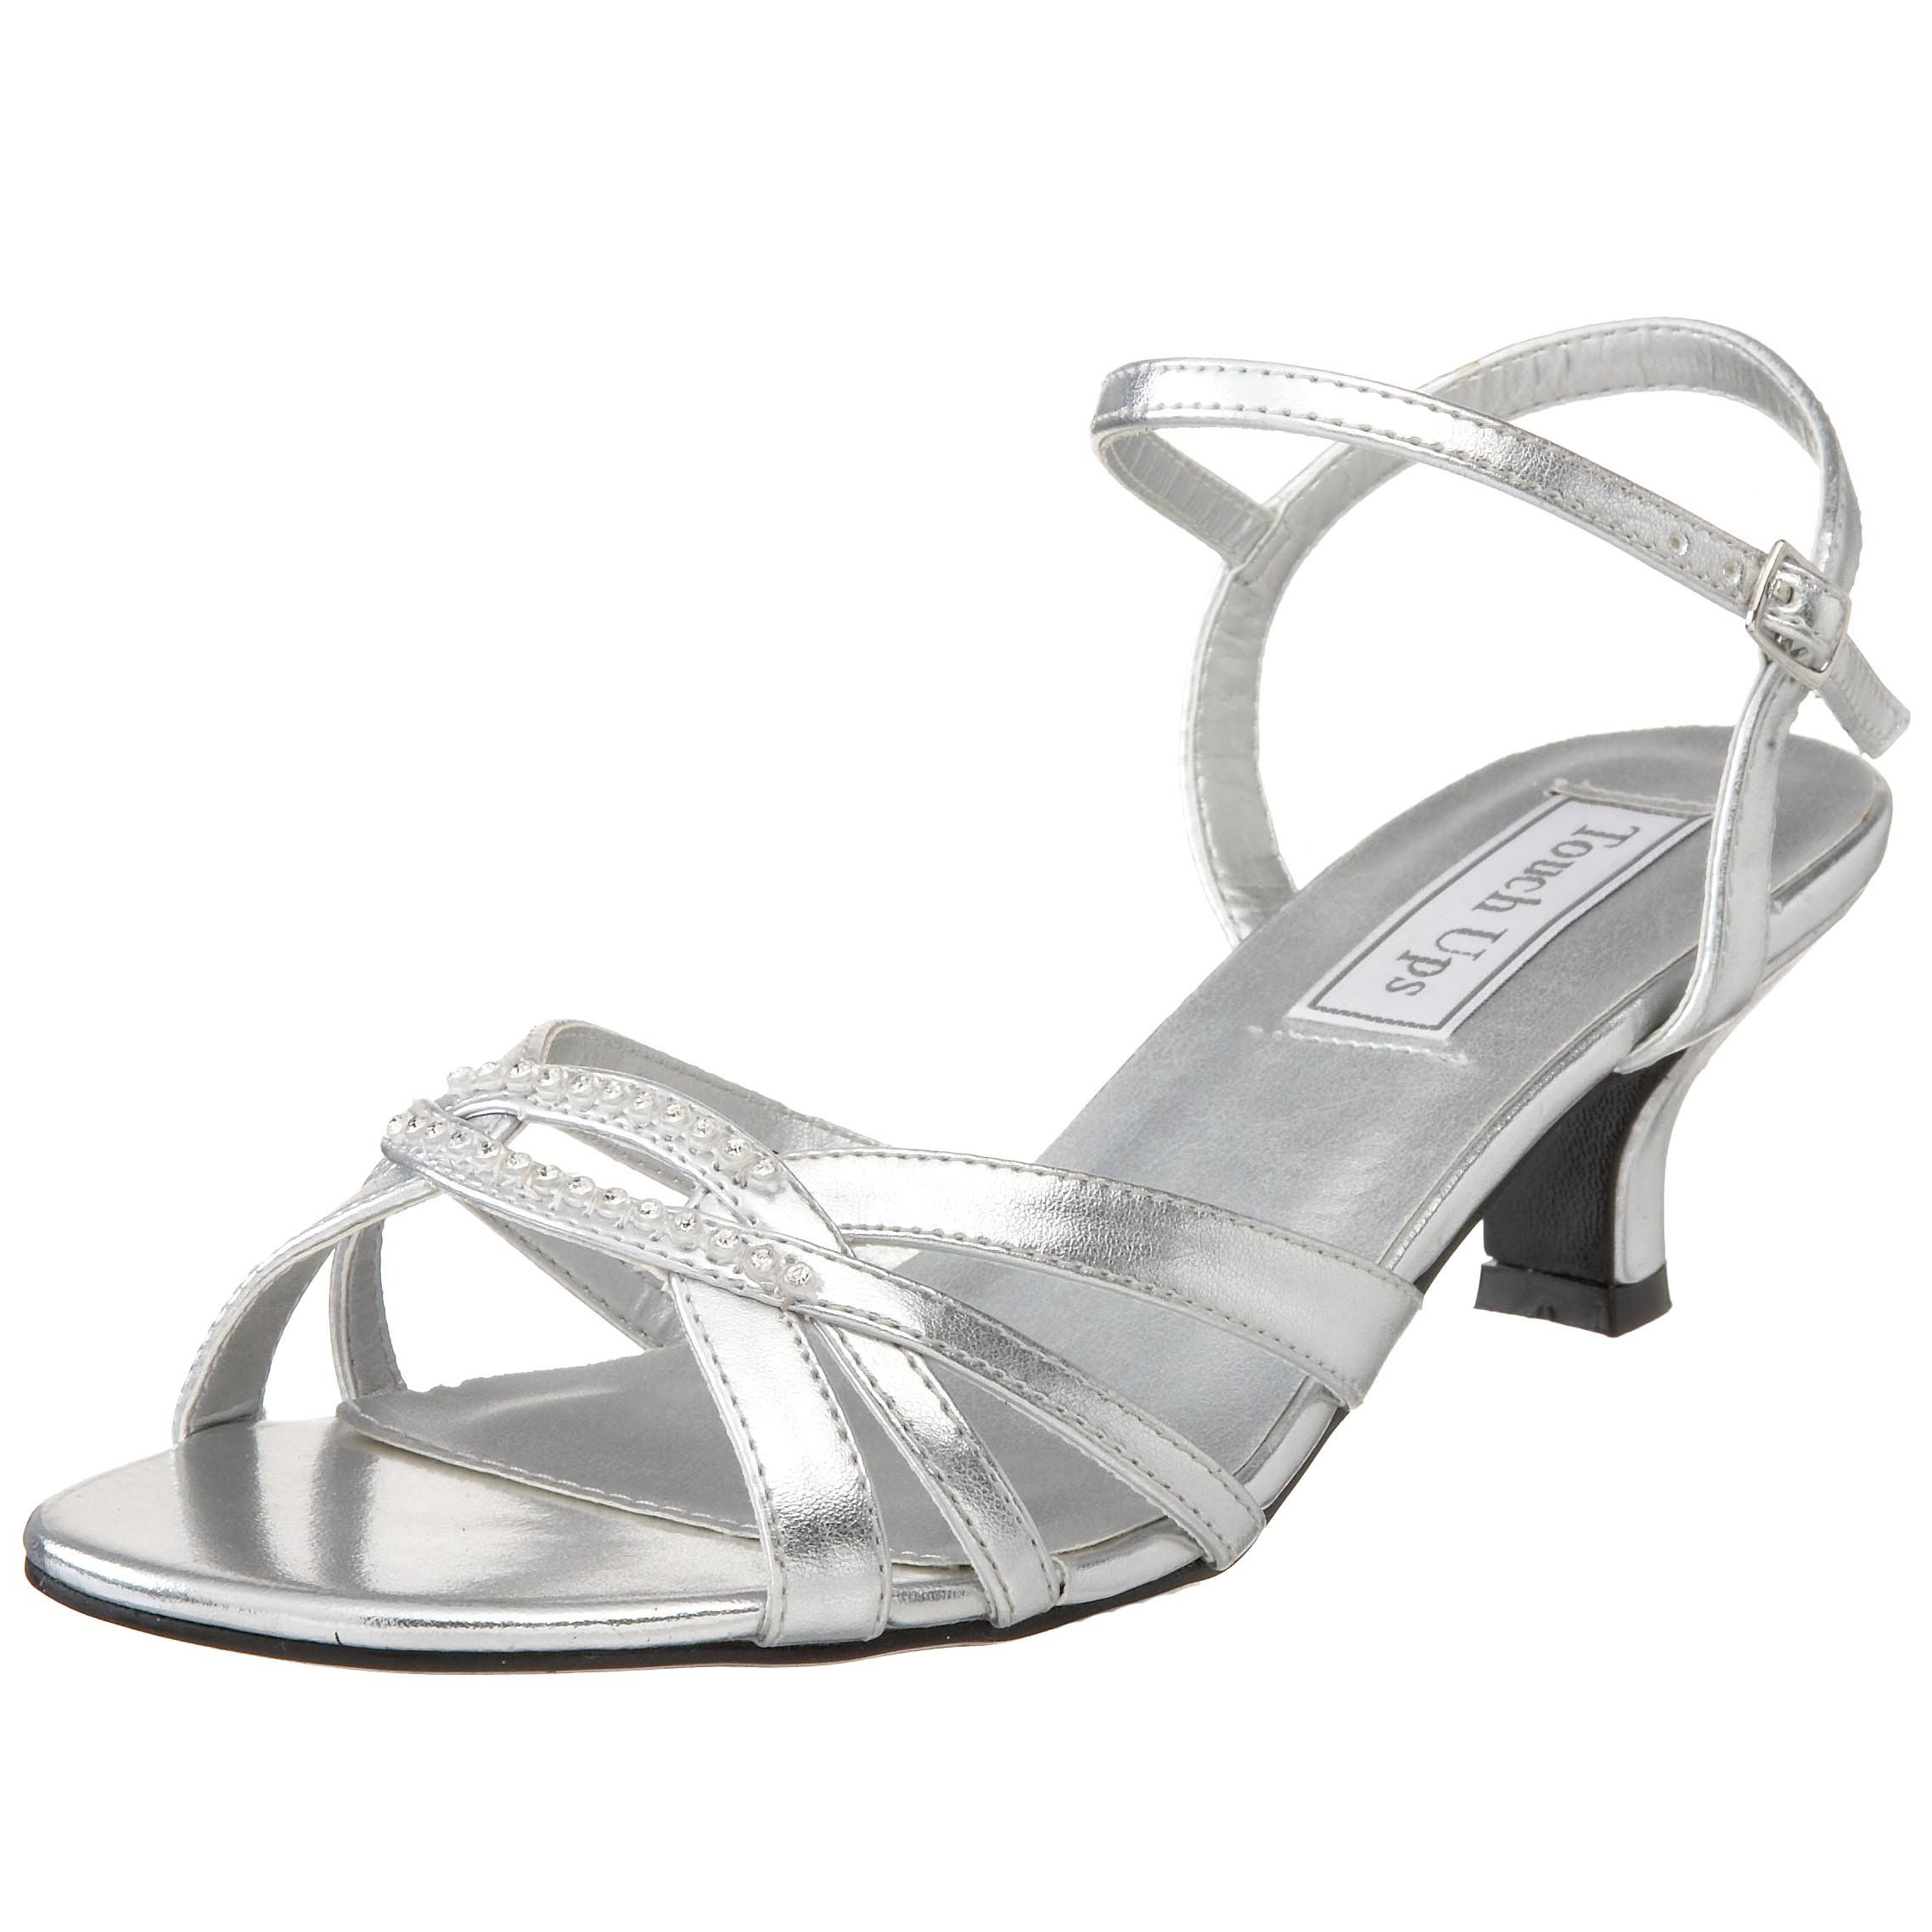 097d234ea62 The Dakota sandal from Touch Ups makes it easy to go glam. The delicate  design is easy to wear thanks to its low heel and adjustable ankle strap ...